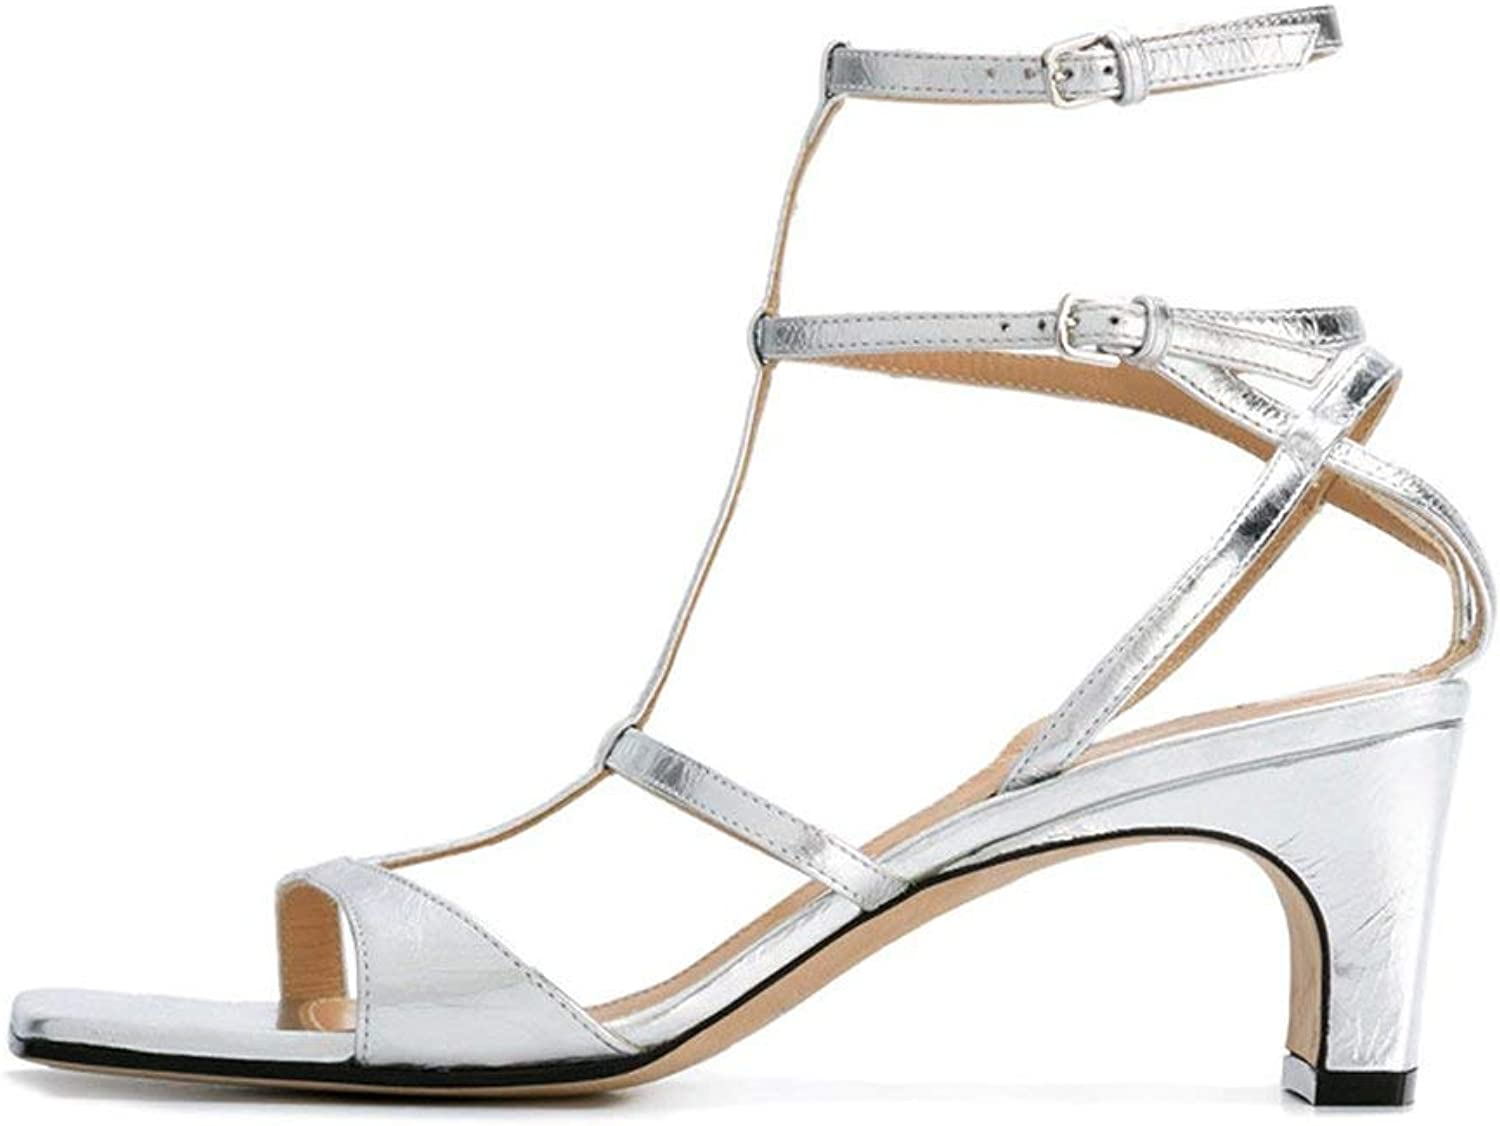 Comfortable and beautiful ladies sandals Sandals Plastic Summer Female Fashionen Silver High Heels